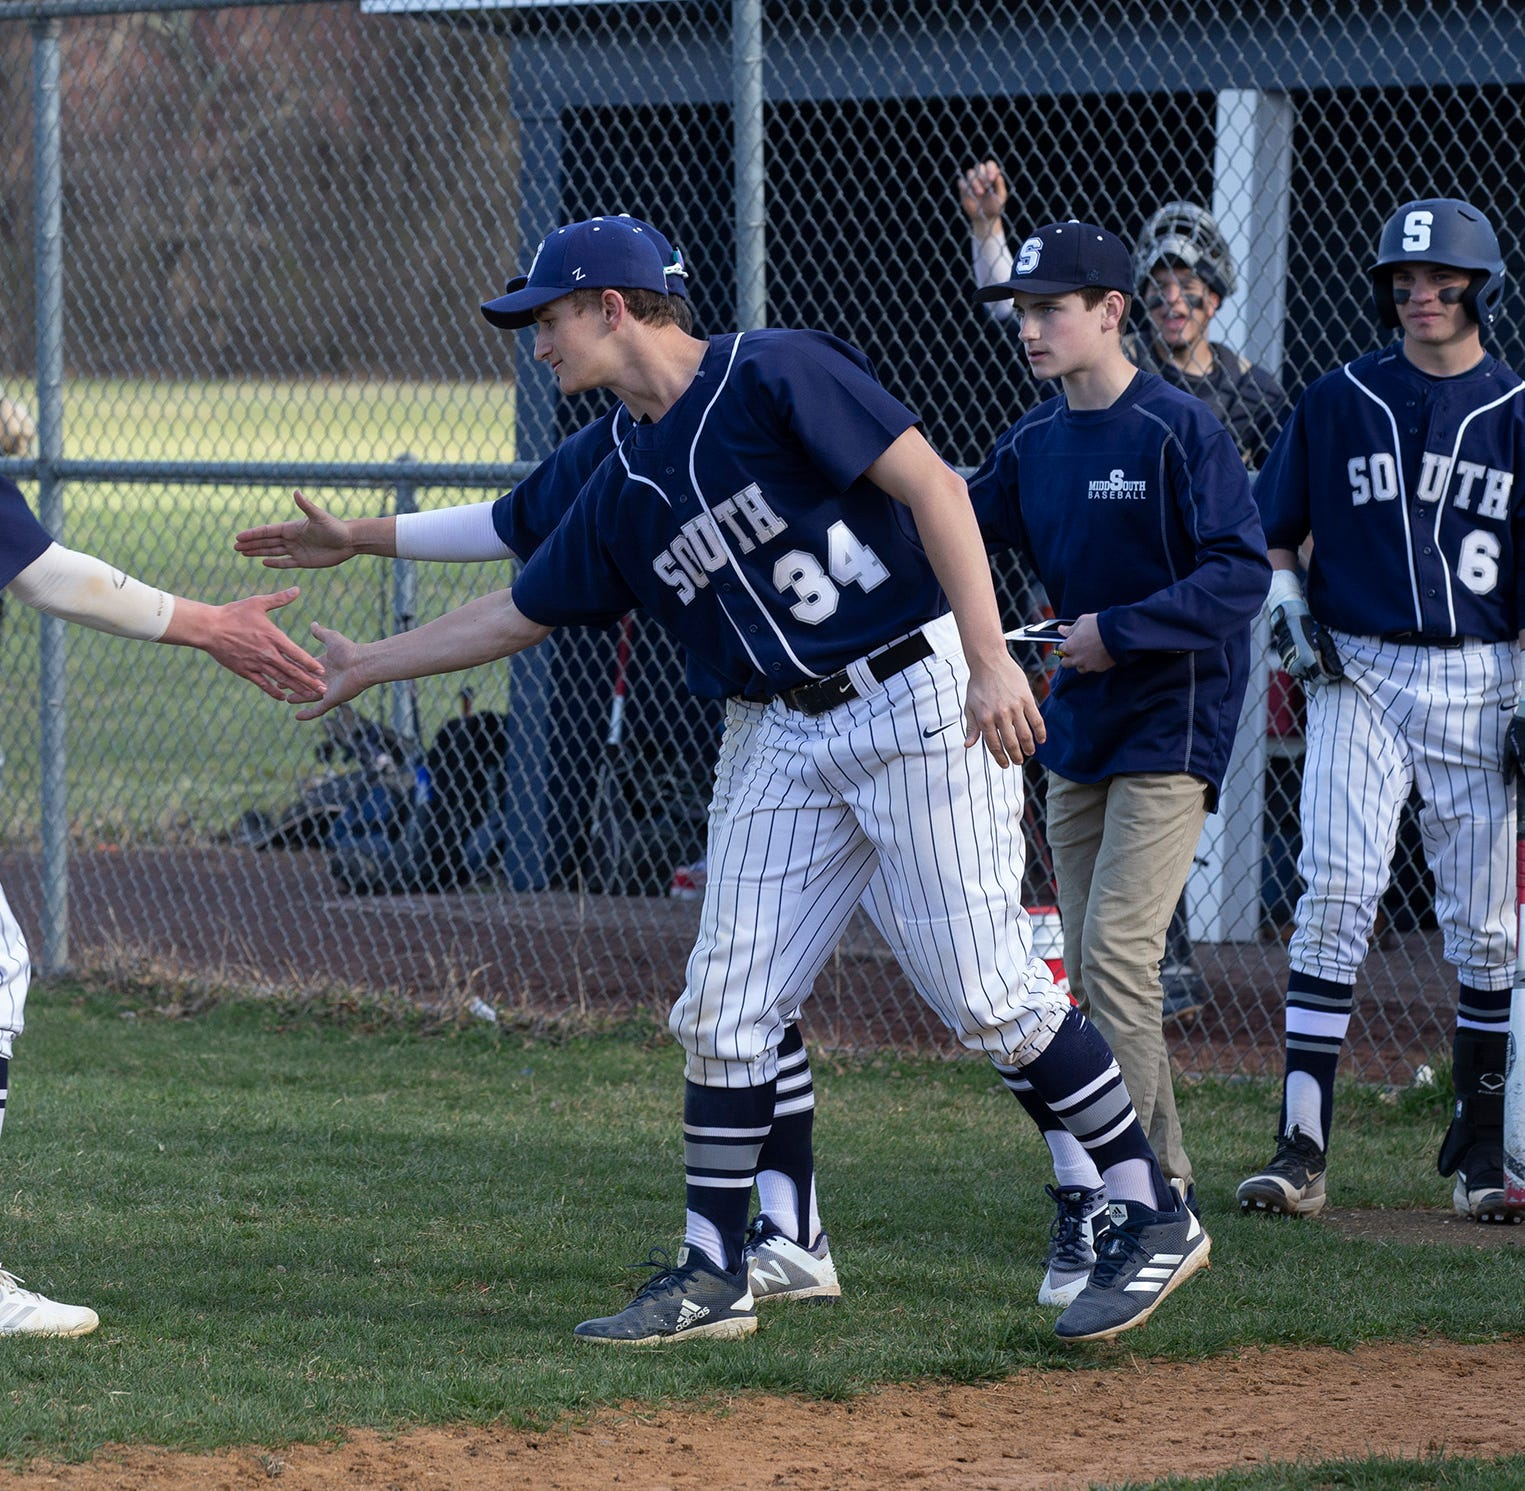 NJ Baseball: Vote for the Shore Conference player of the week